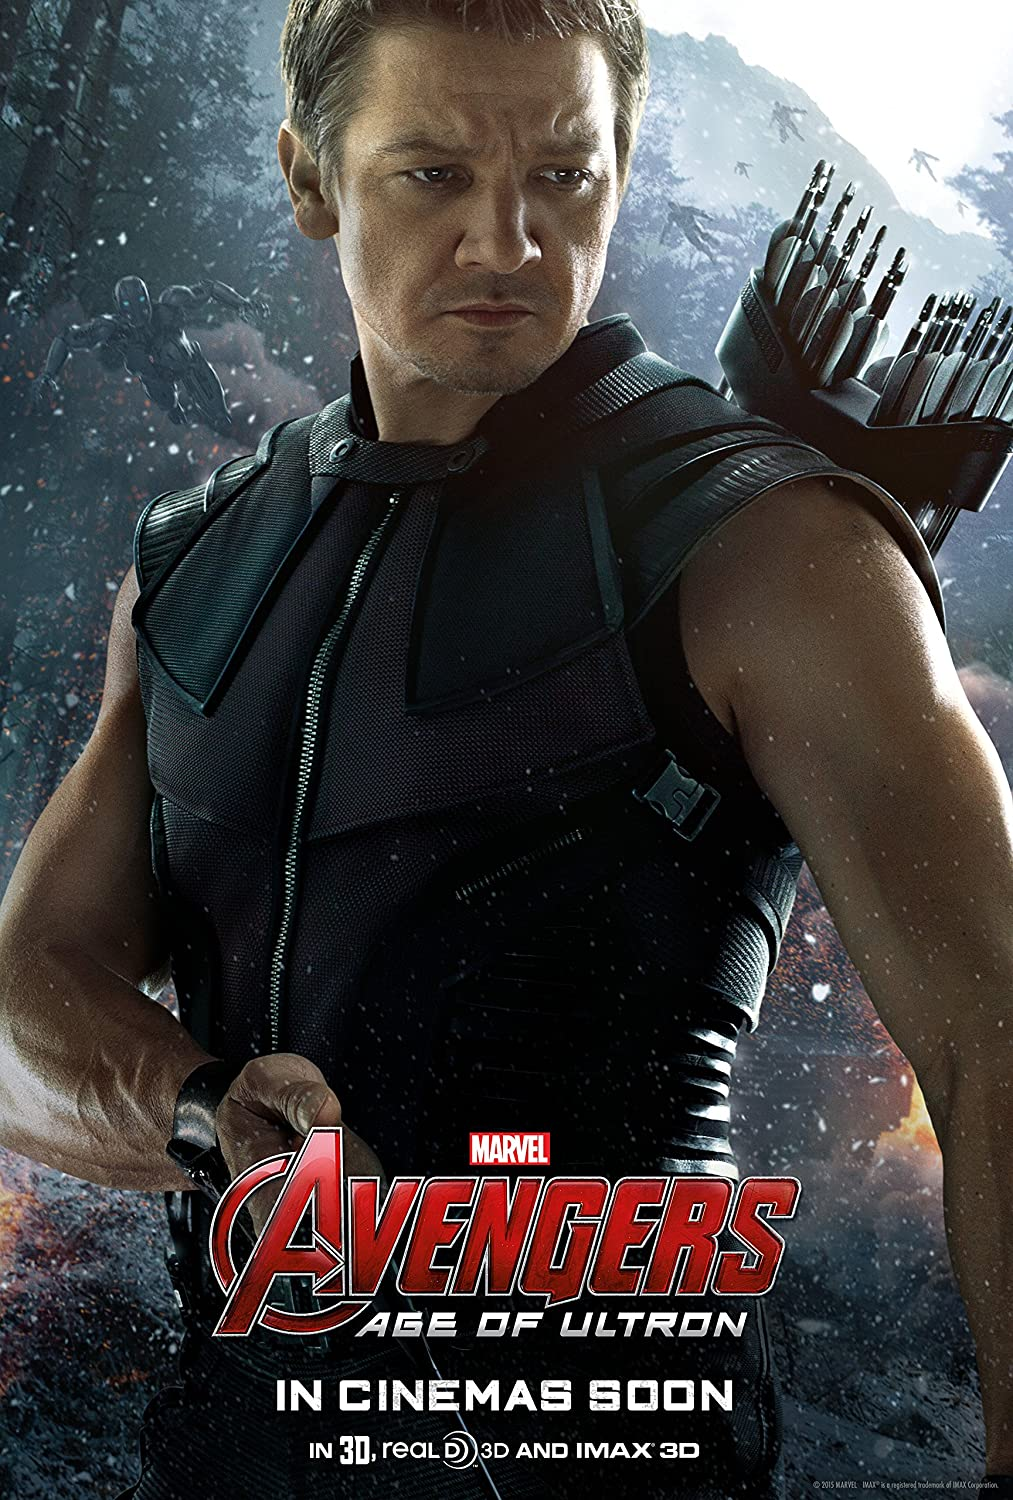 Avengers: Age of Ultron, HAWKEYE (2015) Movie Poster 24x36 , Glossy Finish (Thick): Iron Man, Black Widow, Thor, Captain America